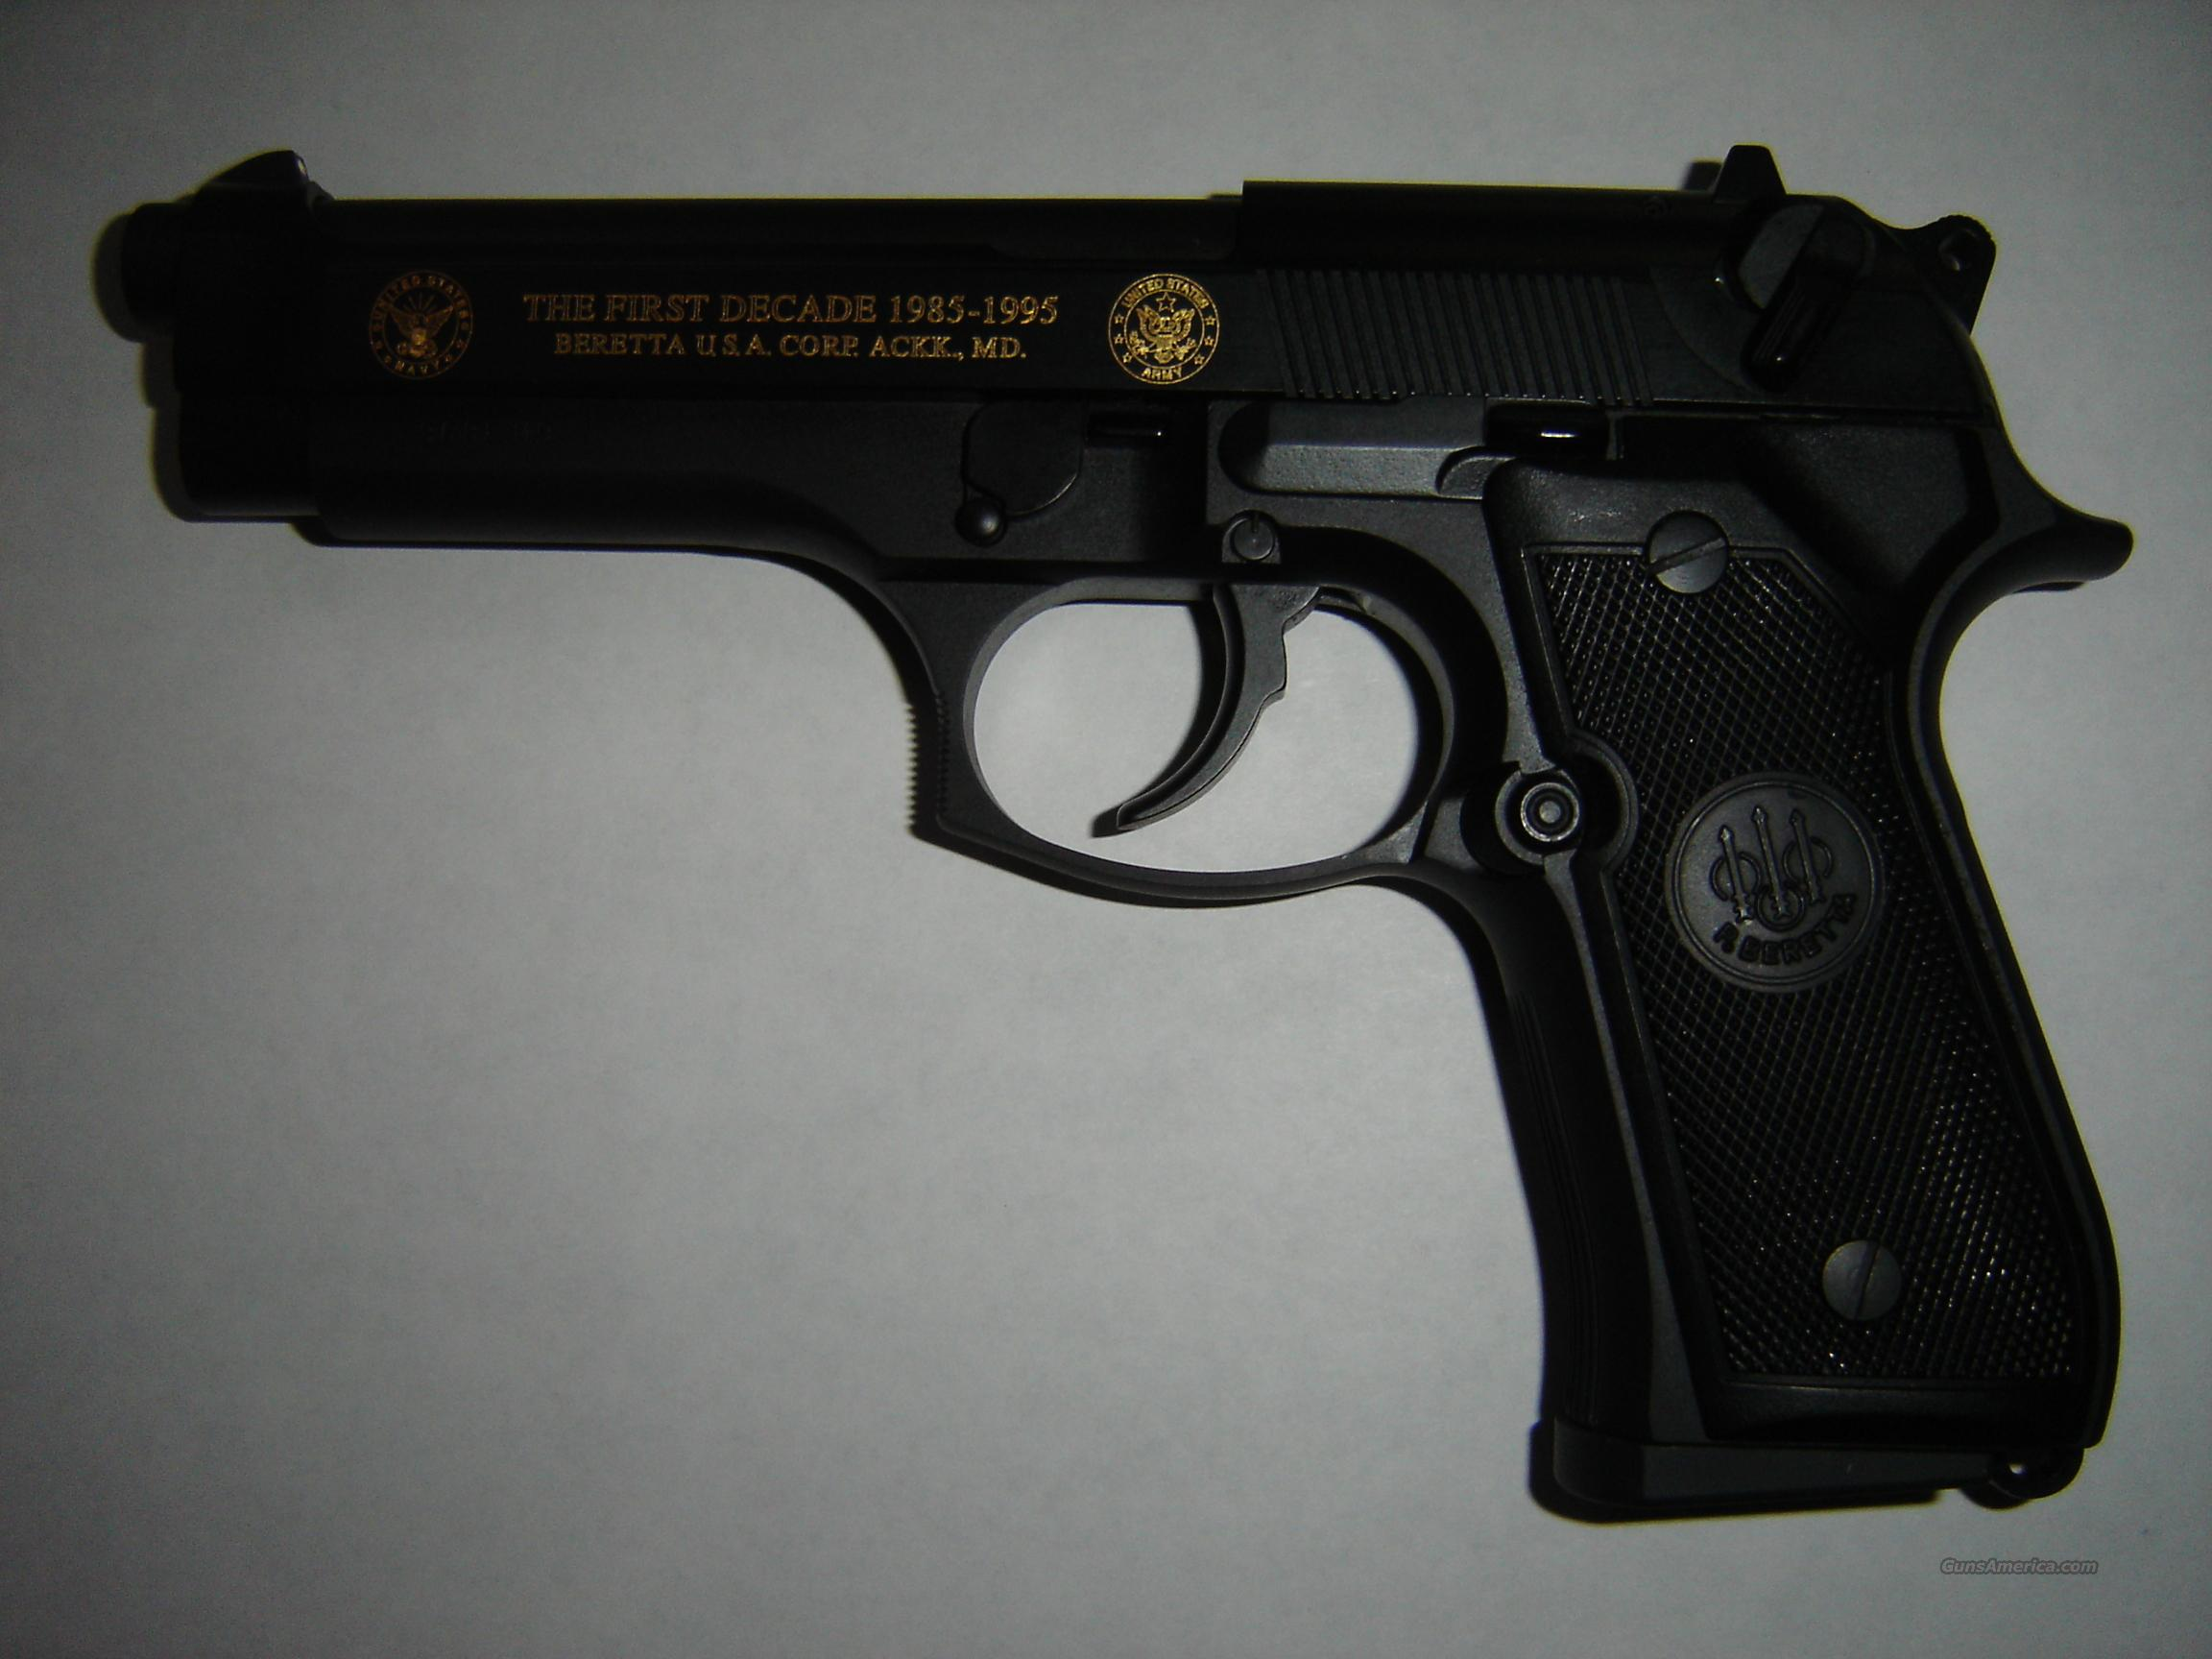 "Beretta limited M9-92FS mm Parabbllum America's Defender ""THE FIRST DECADE 1985-1995"" Beretta USA Corp   Guns > Pistols > Beretta Pistols > Model 92 Series"